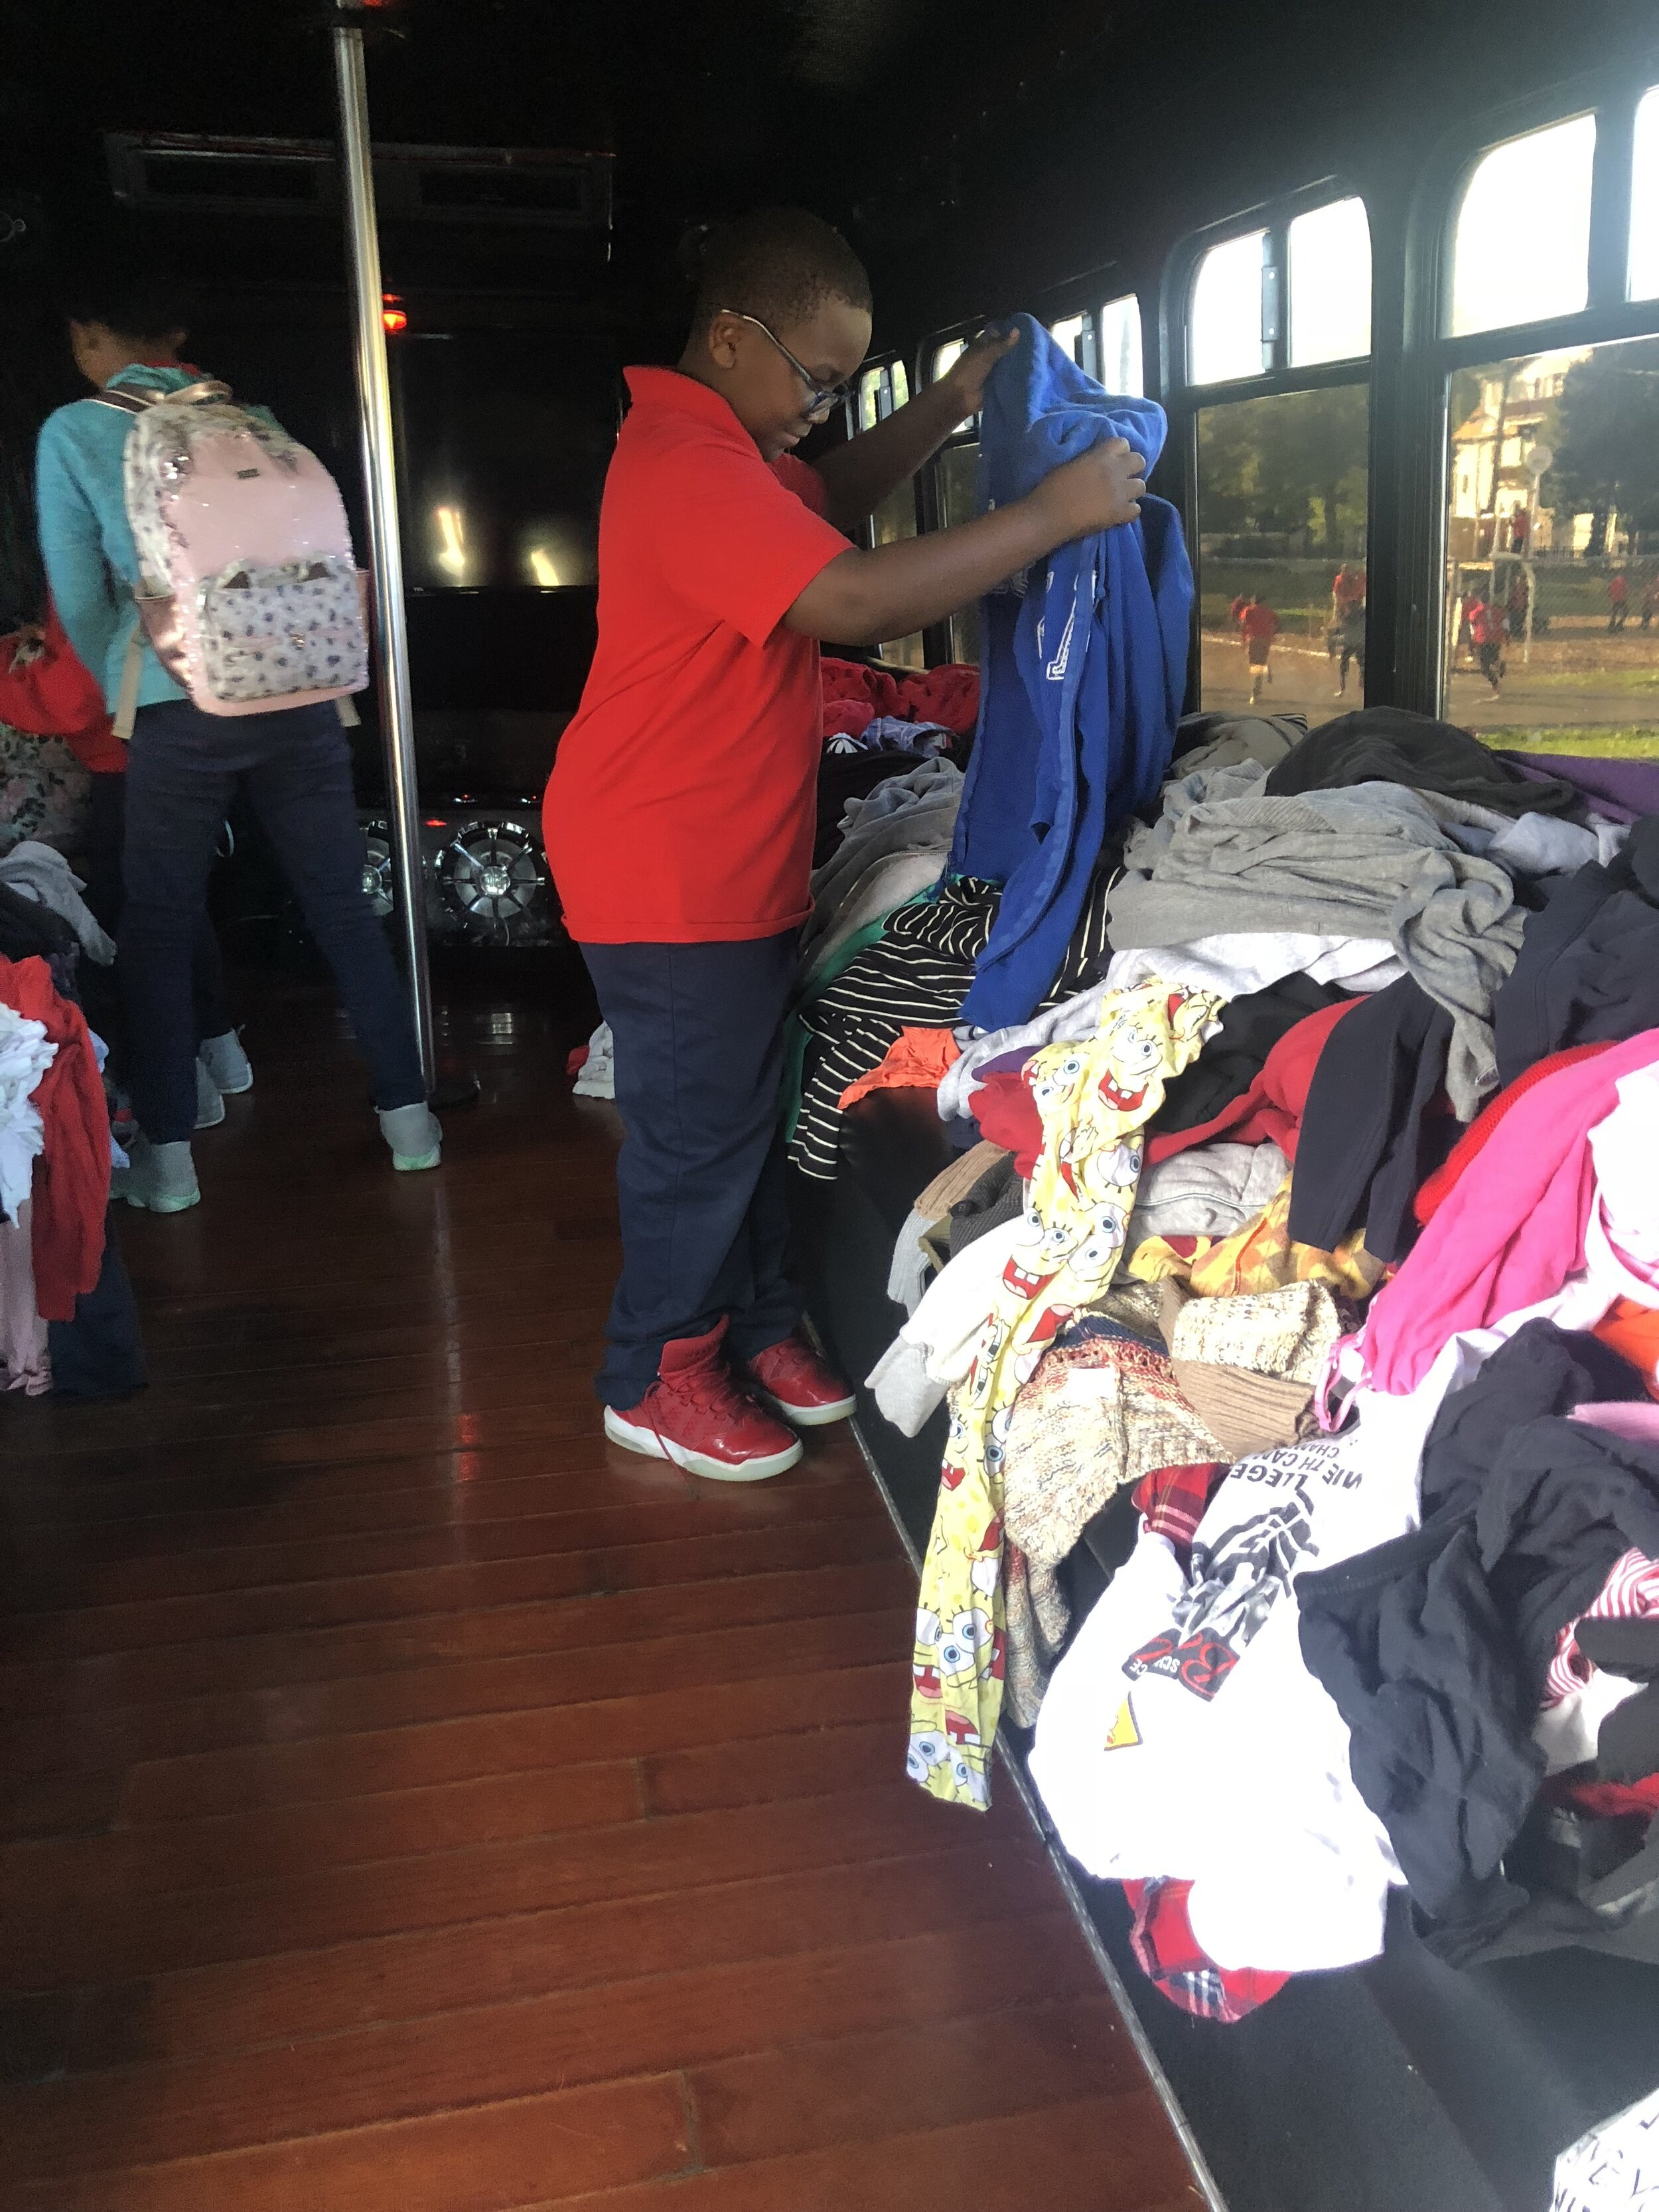 Krystal Griffin turned her bus into a free clothes donation for children. (Picture by Krystal Griffin)